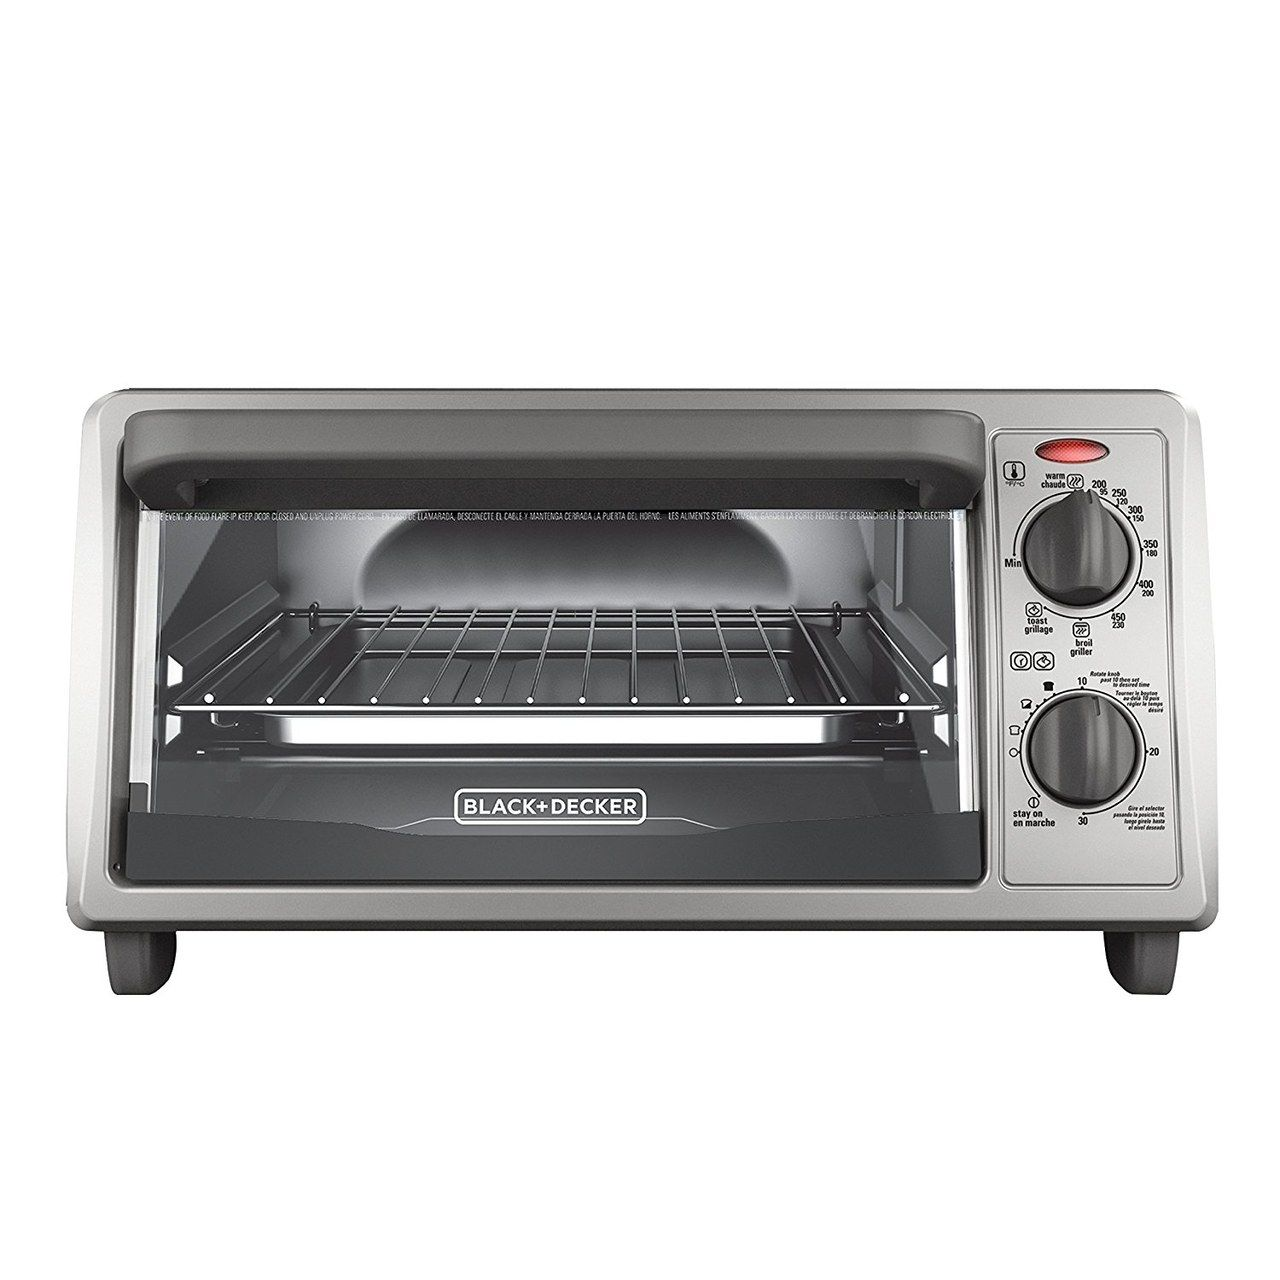 The 10 Best Toaster Ovens According To Customer Reviews French Door Oven Countertop Oven Convection Toaster Oven